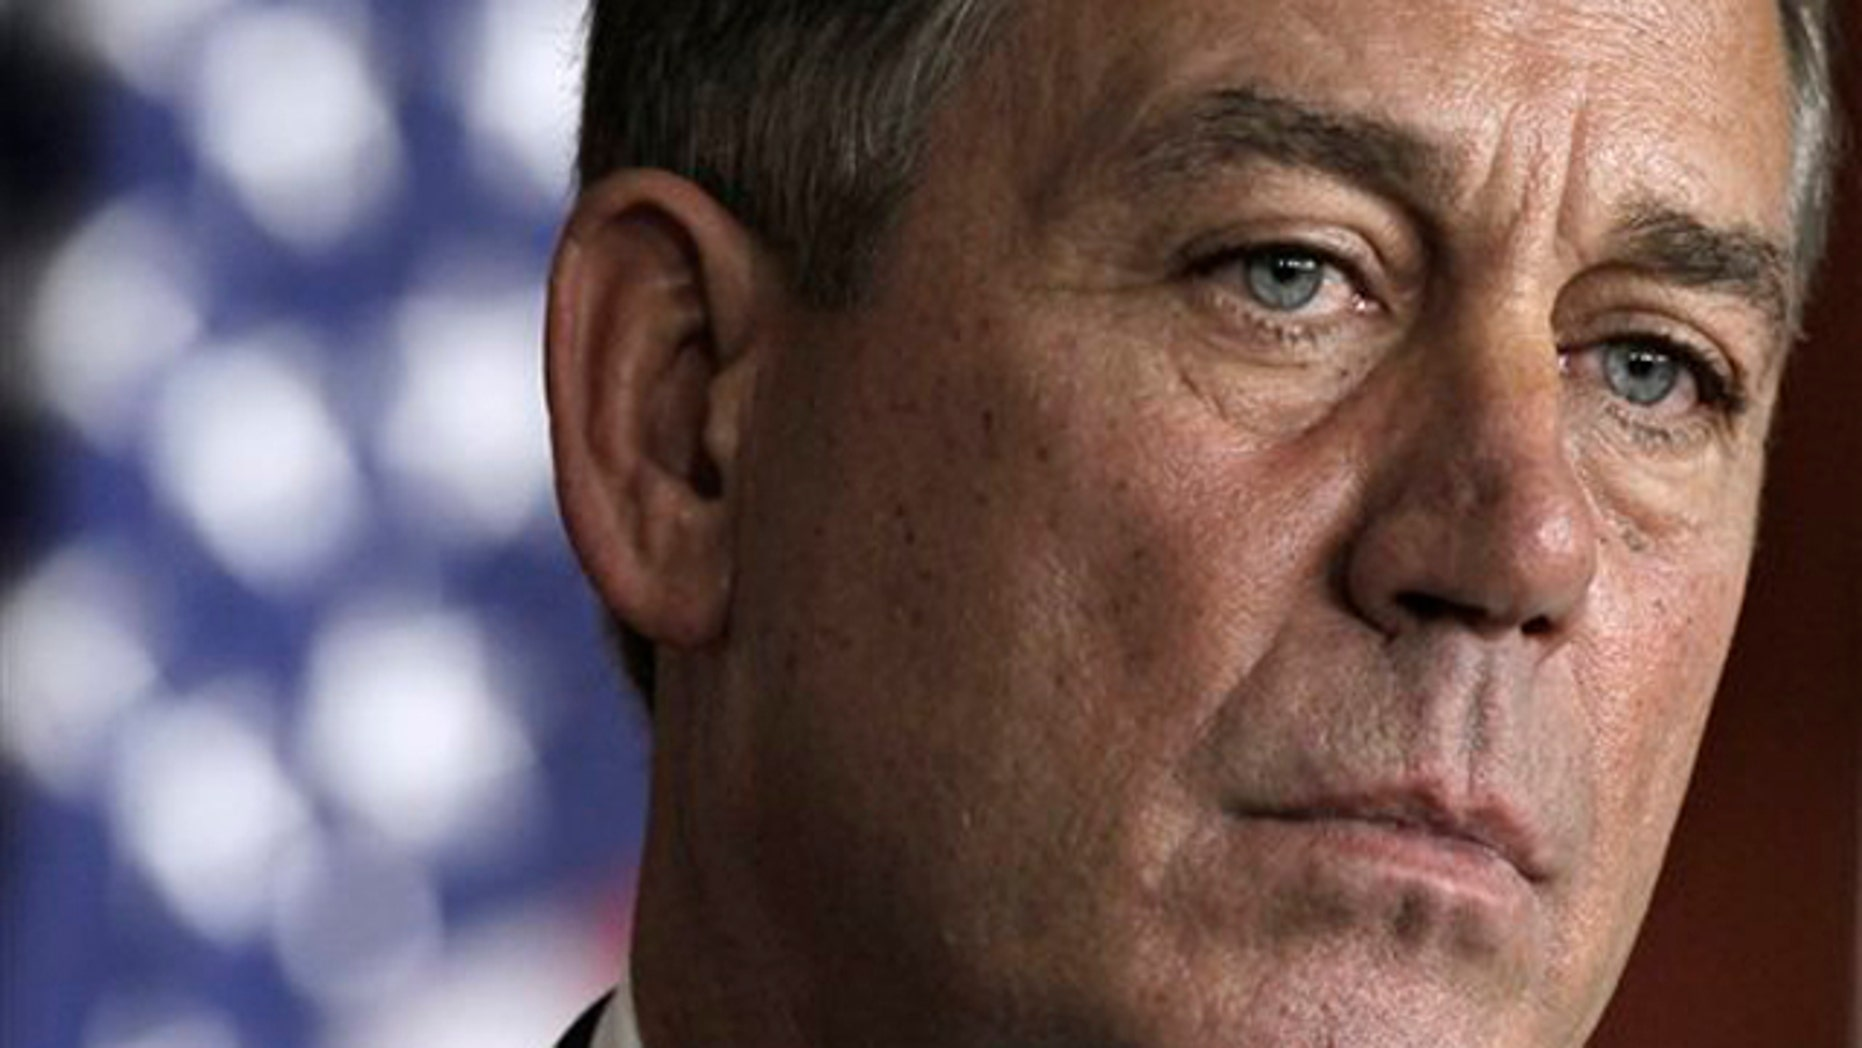 House Speaker John Boehner takes part in a news conference on Capitol Hill in Washington July 28.